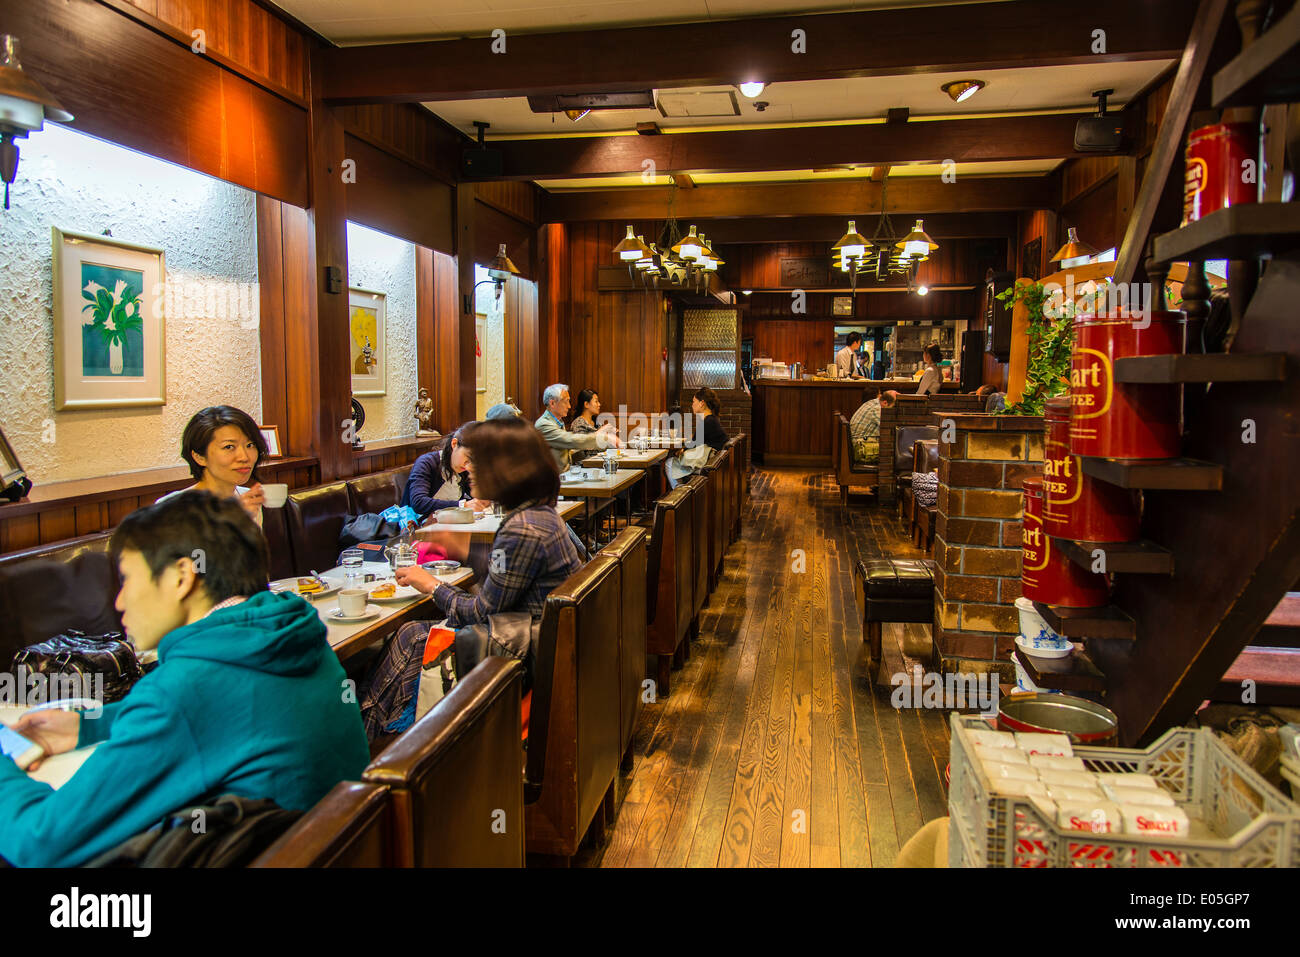 Interior view of a cafe in Kyoto, Japan Stock Photo